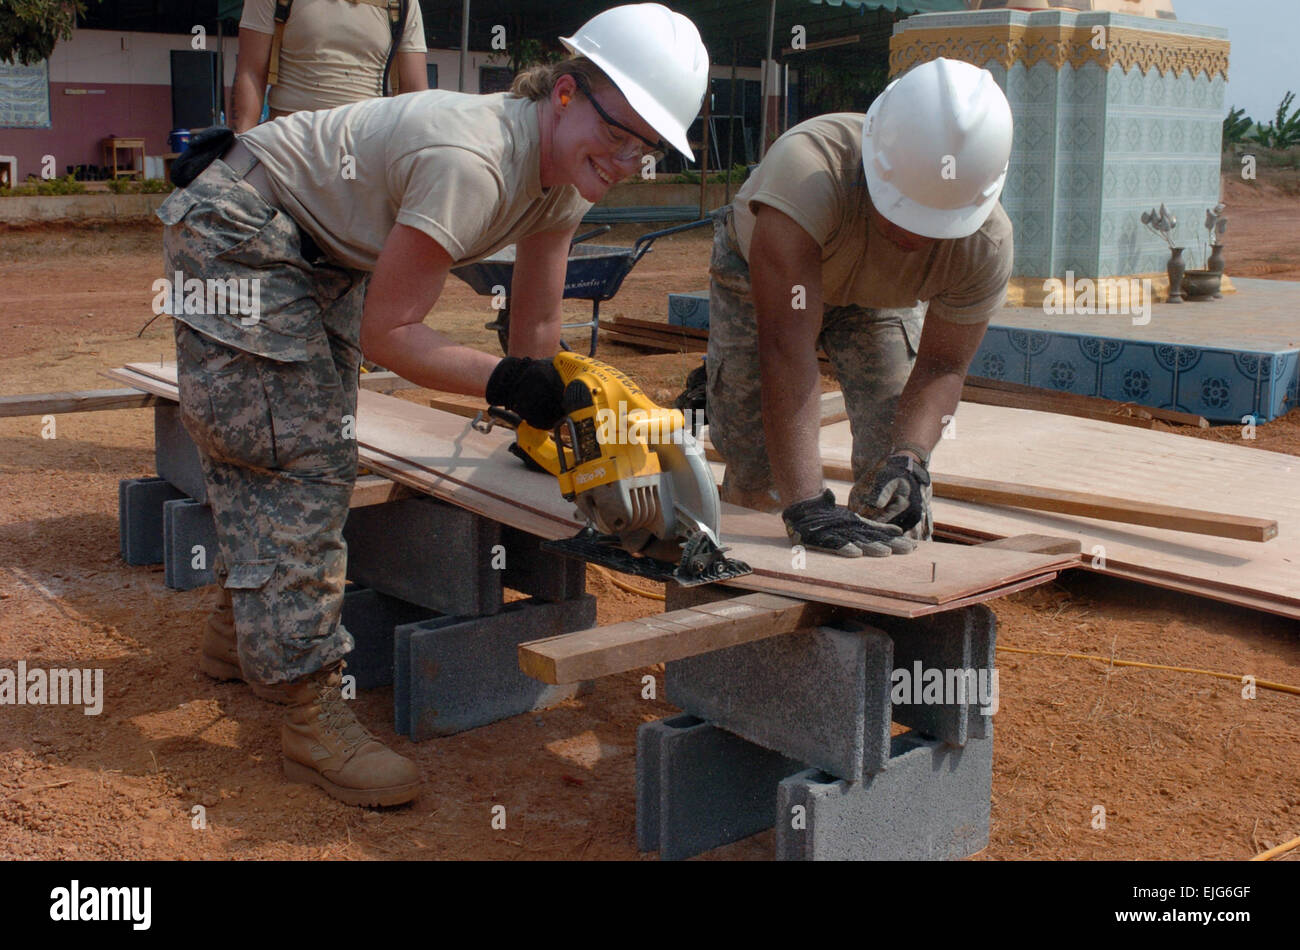 Pvt. 1st Class Michelle Almeida of Kihei, Hawaii and Sgt. 1st Class Brandon Cabanilla of Kahalui cut wood framing - Stock Image